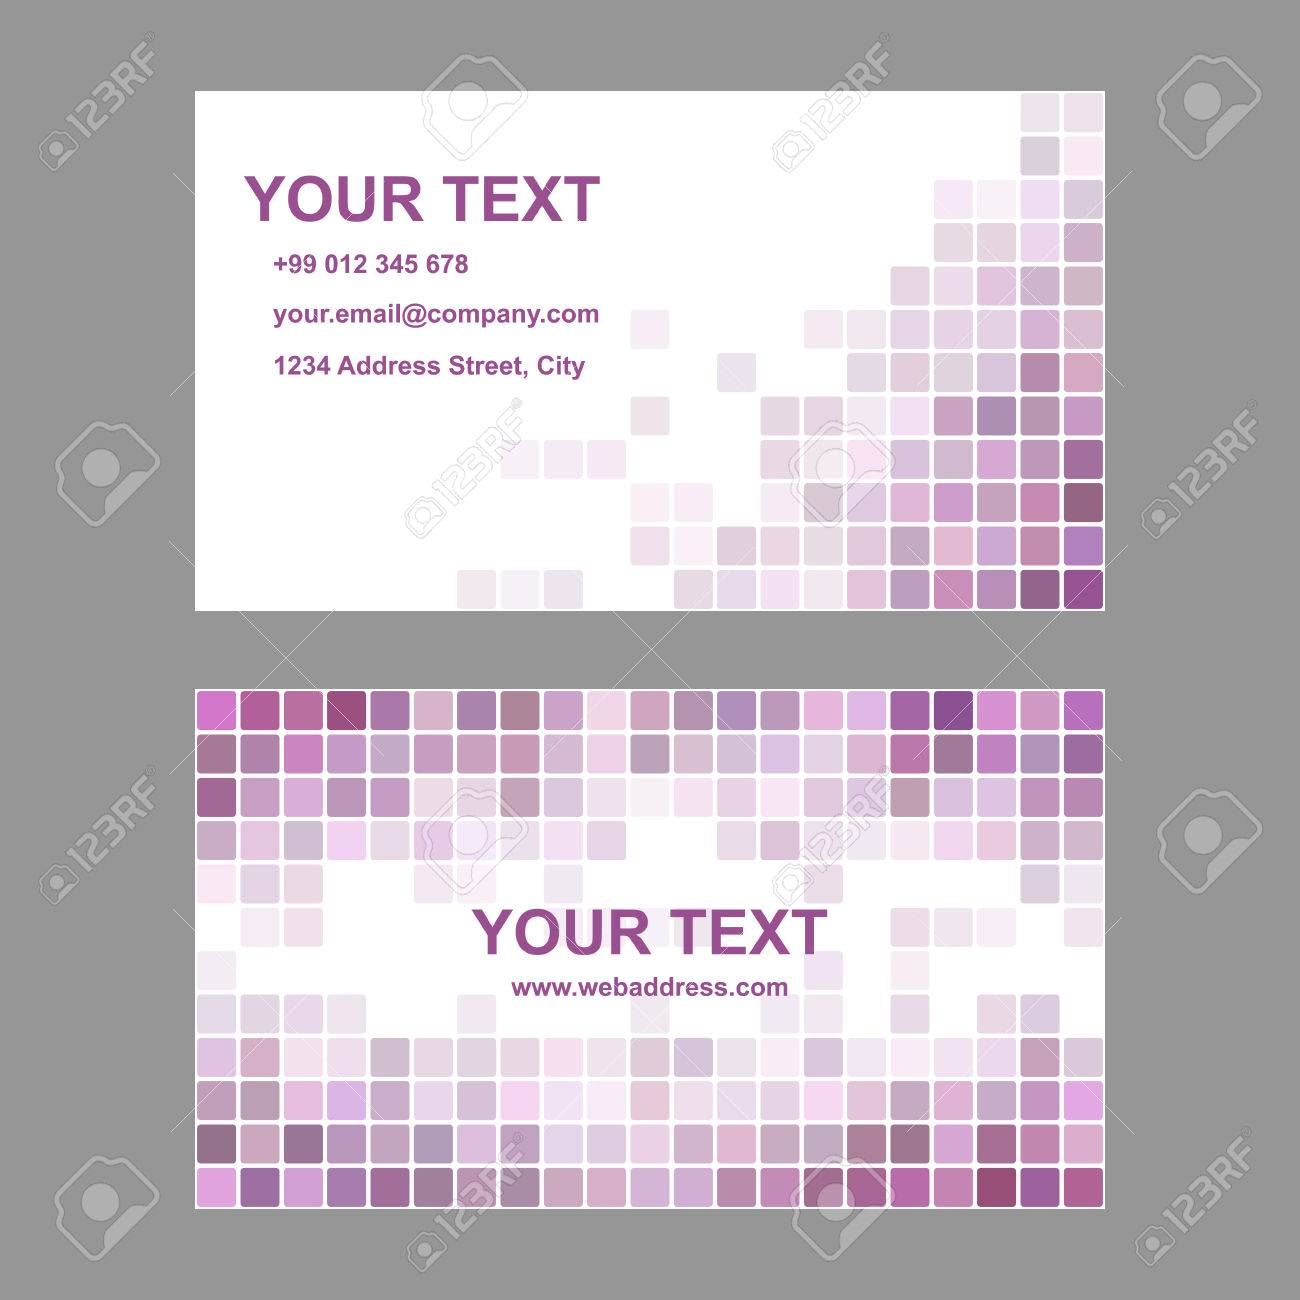 Purple abstract business card template background design from purple abstract business card template background design from rounded squares stock vector 63651219 fbccfo Image collections